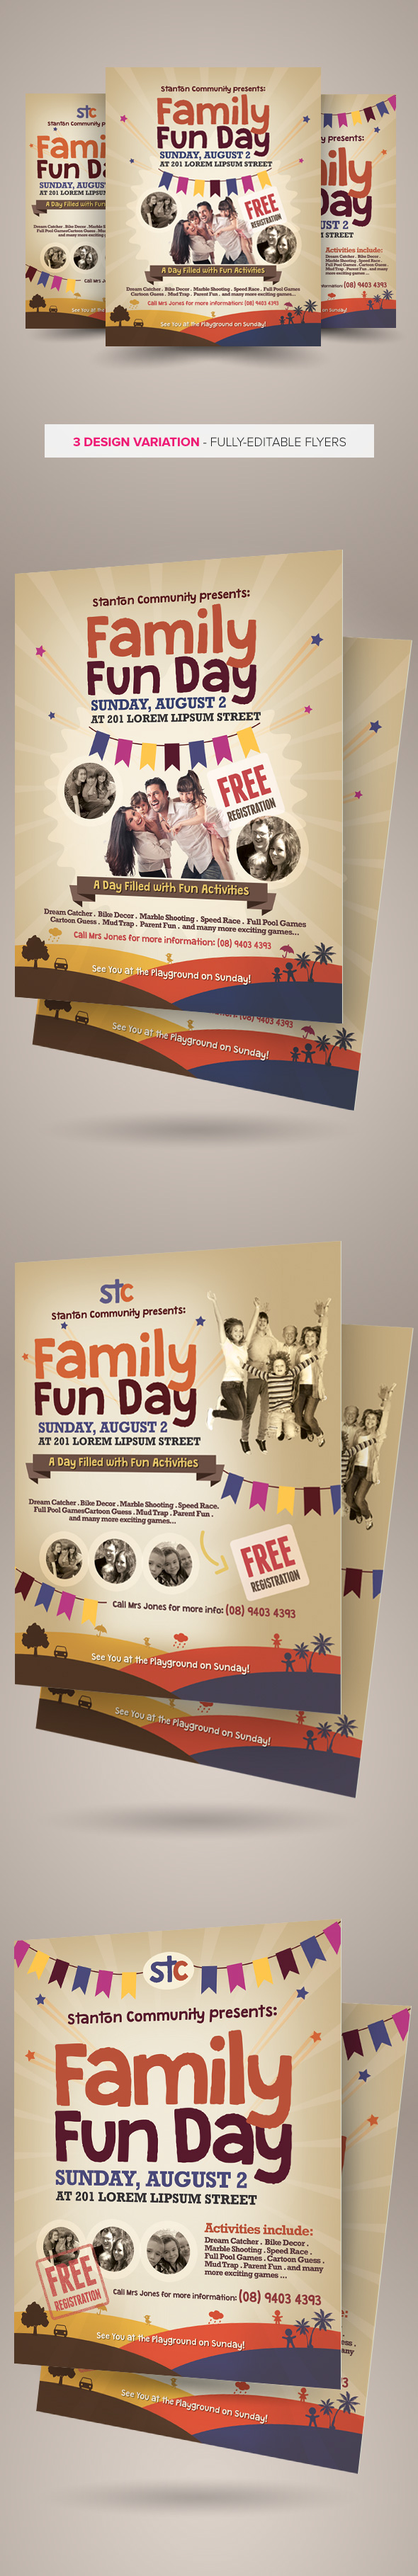 family fun day flyers vol on behance family fun day flyers are design templates created for on creative market more info of the templates and how to get the sourcefiles can be found on